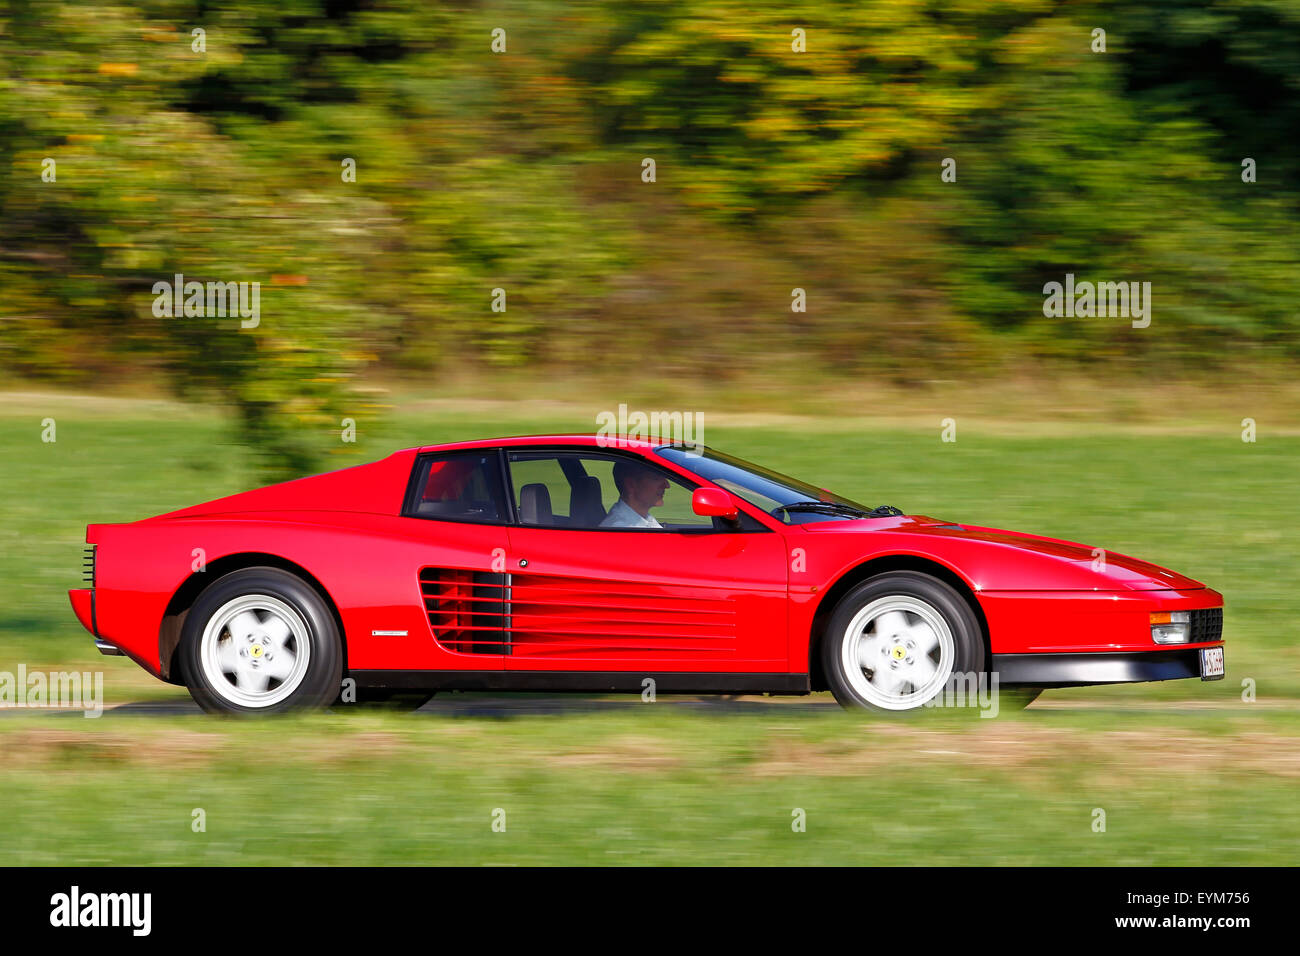 Testarossa stock photos testarossa stock images alamy car ferrari testarossa vintage car year of construction unknown red moving vanachro Gallery